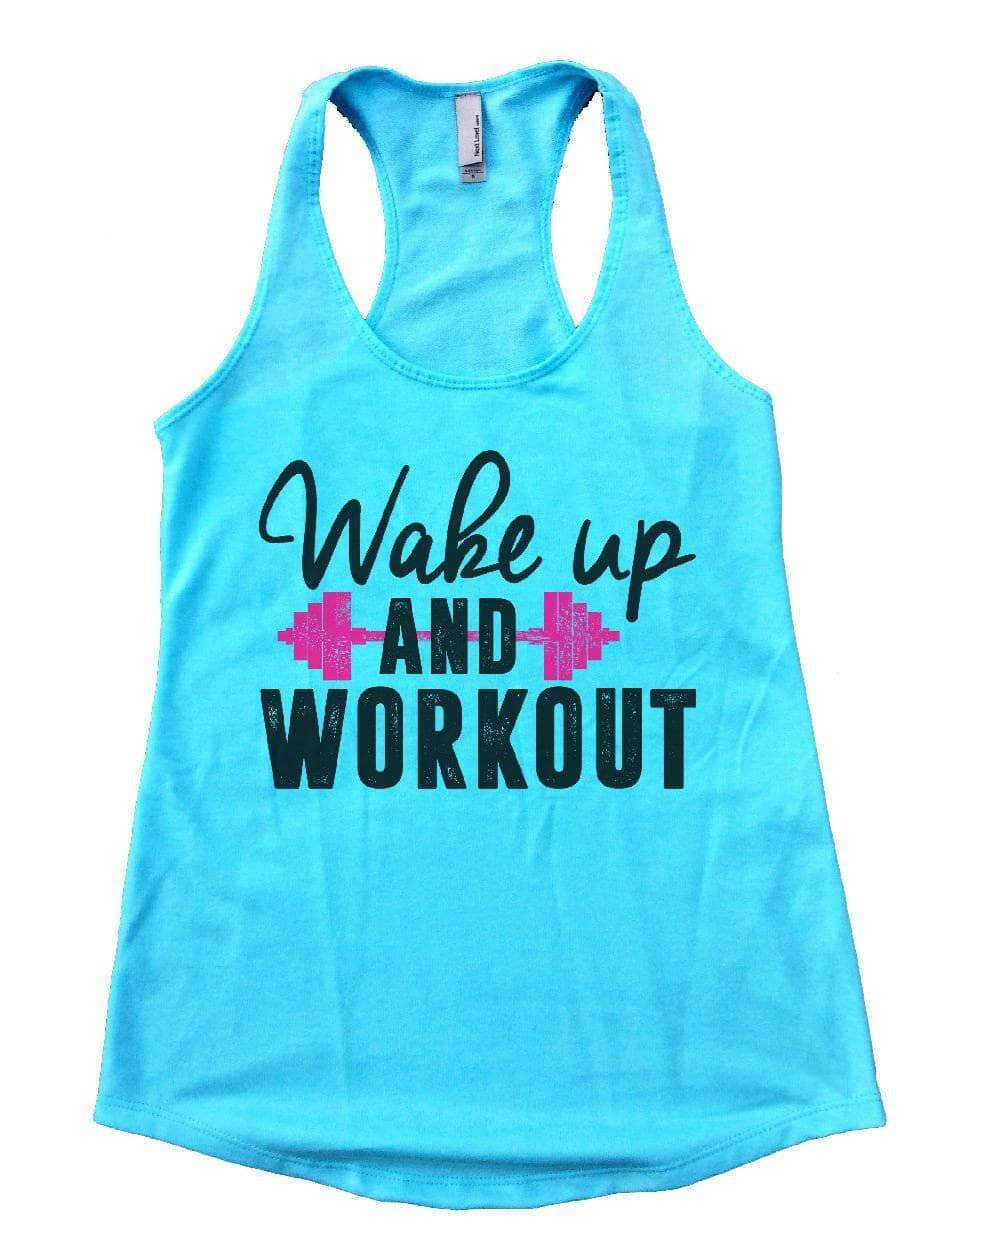 Wake Up AND WORKOUT Womens Workout Tank Top Small Womens Tank Tops Cancun Blue